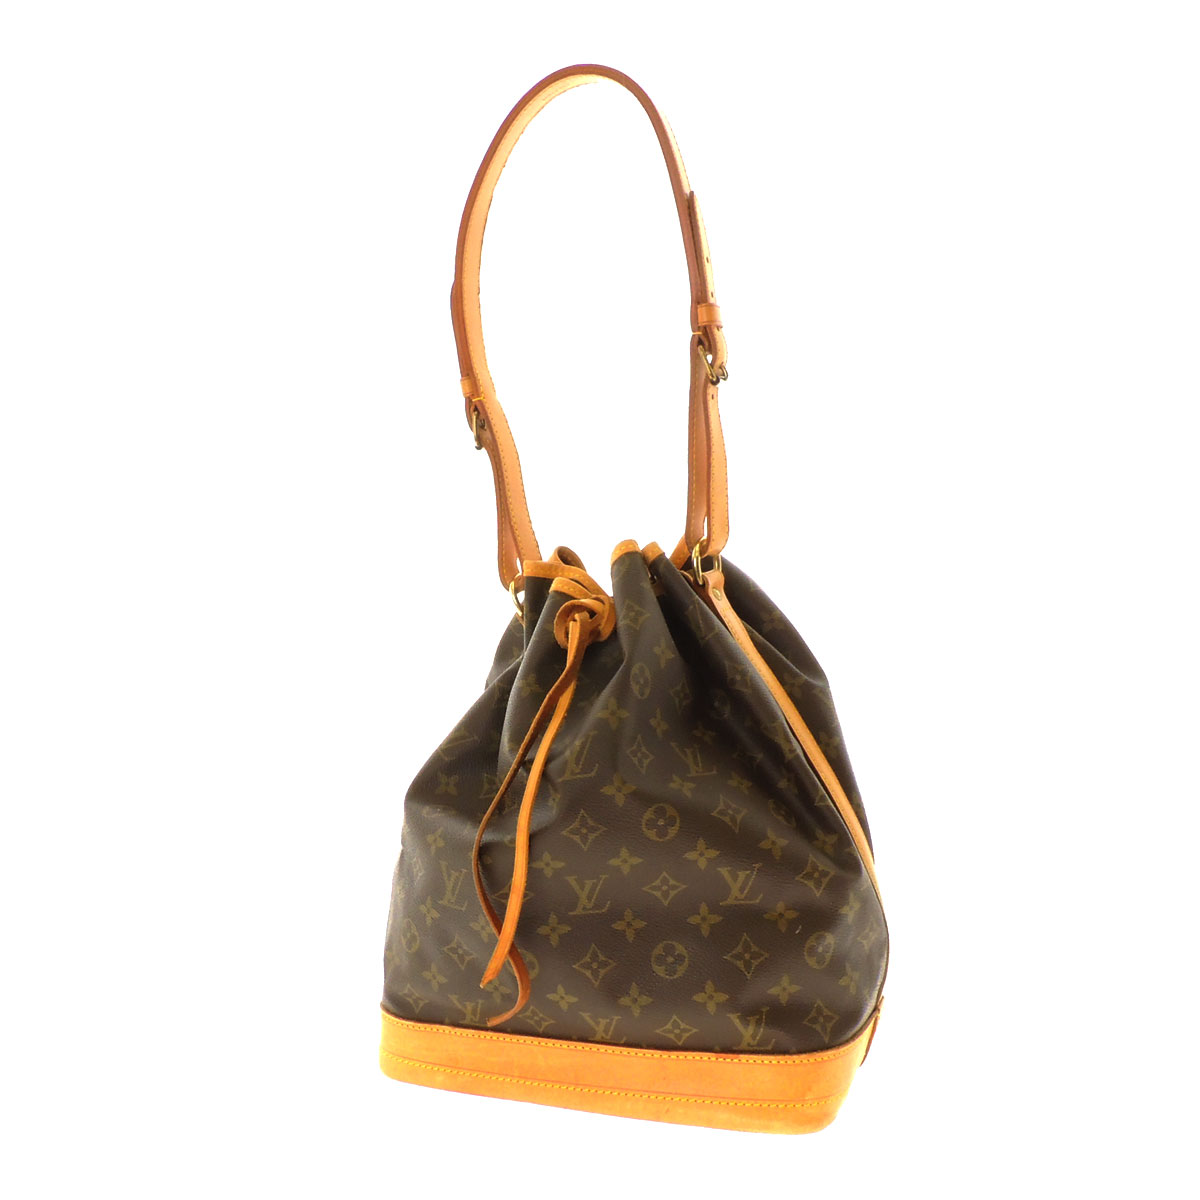 LOUIS VUITTON Noe M42224 shoulder bag monogram canvas Lady's fs3gm